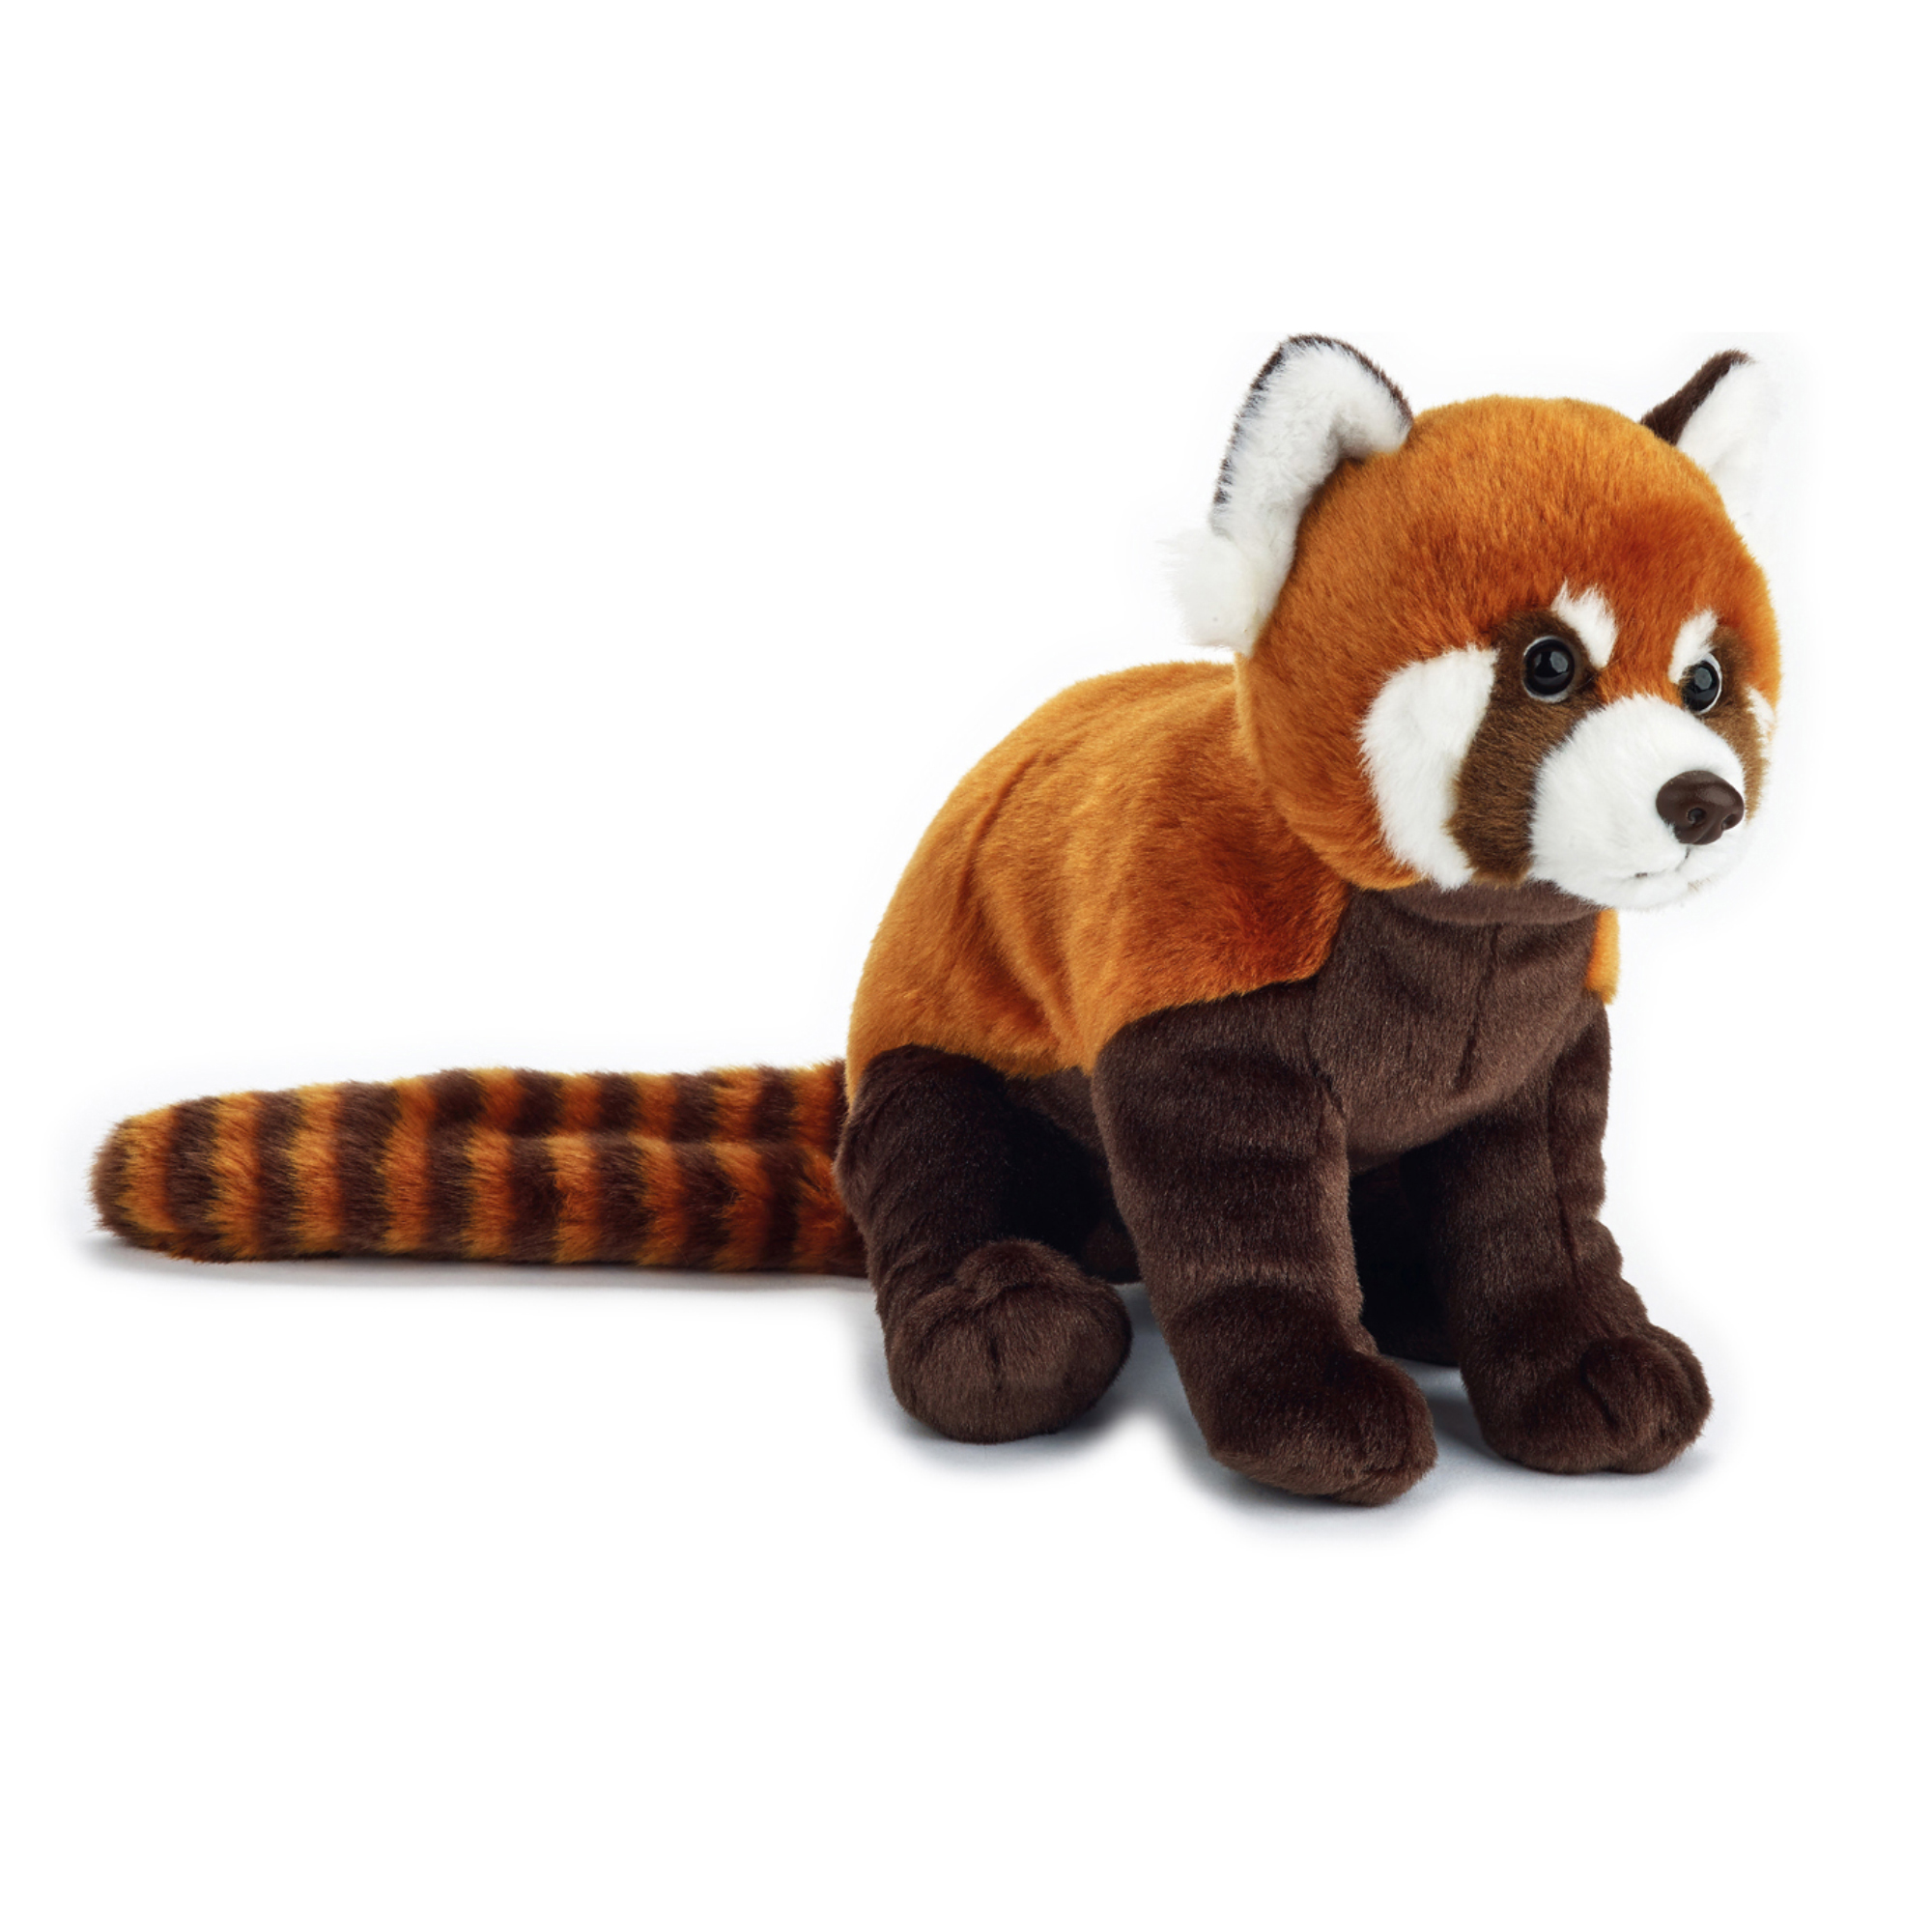 Lelly National Geographic Basic Plush, Red Panda by Venturelli - National Geographic